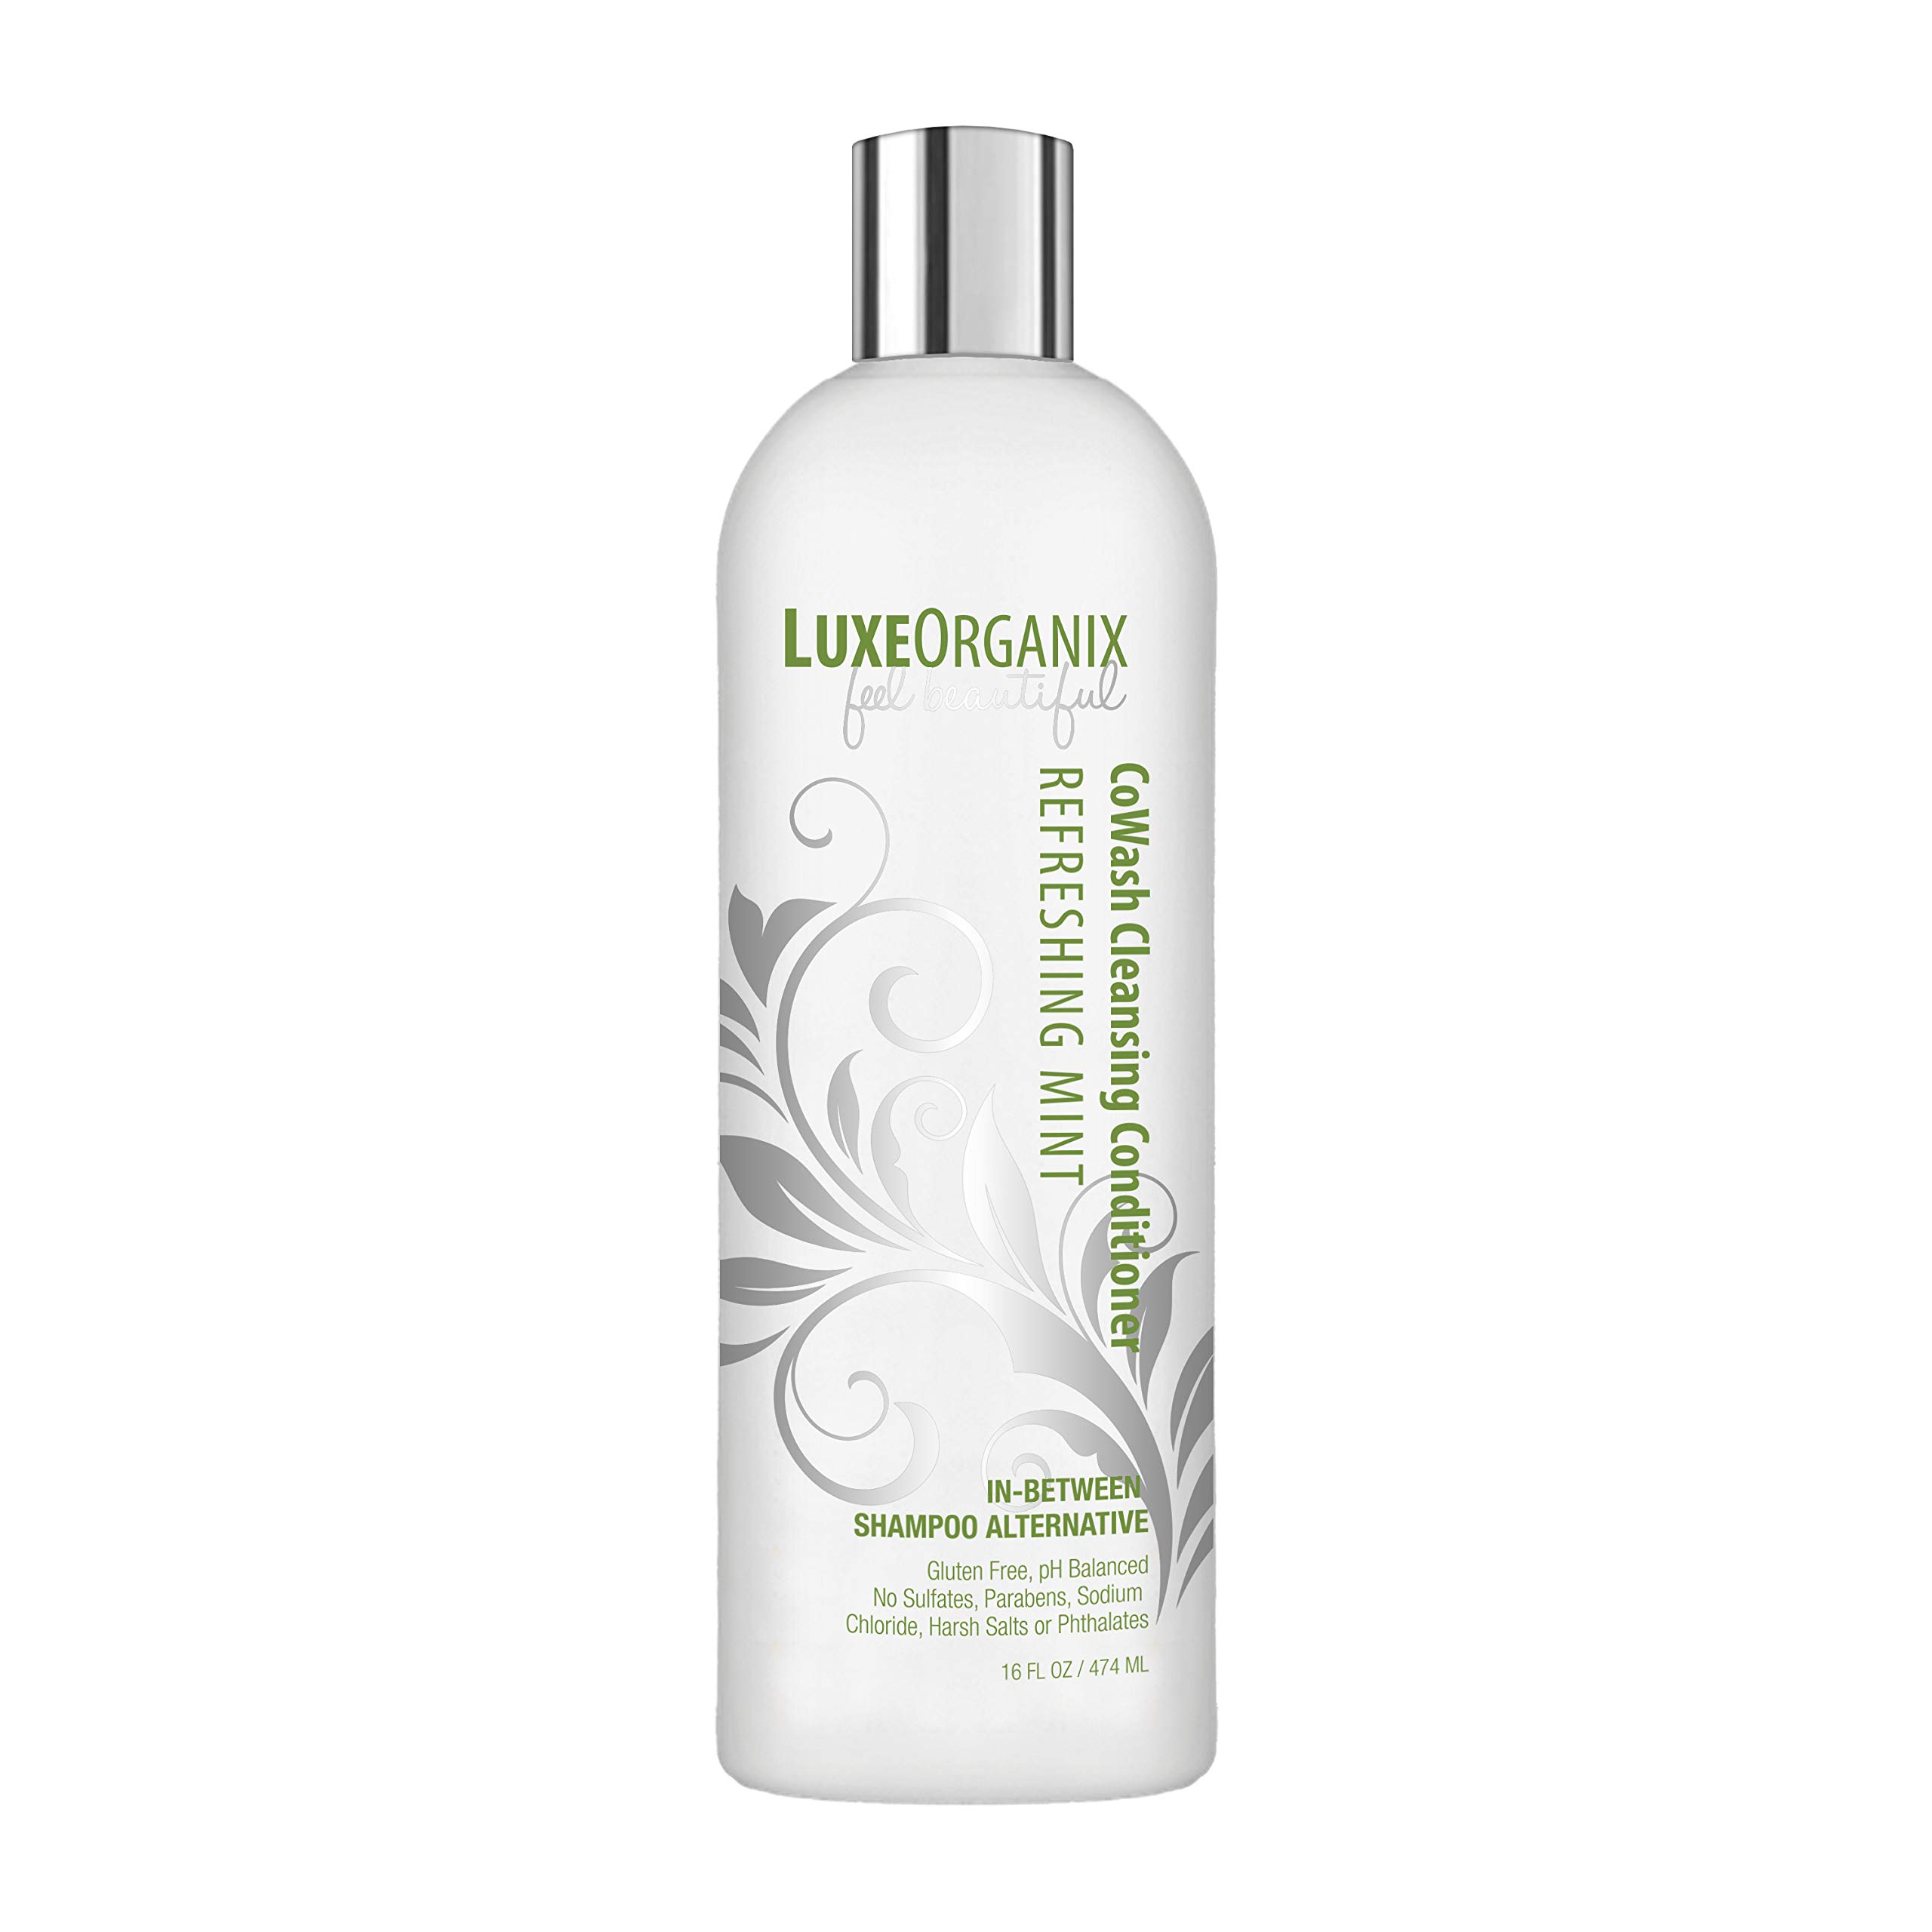 Cleansing Conditioner Cowash: Sulfate-Free and Keratin Safe, Won't Strip Hair or Cause Dryness. Soothing and Refreshing Mint, Safe for Natural, Curly, Colored, Dry or Damaged Hair. - LuxeOrganix (USA)